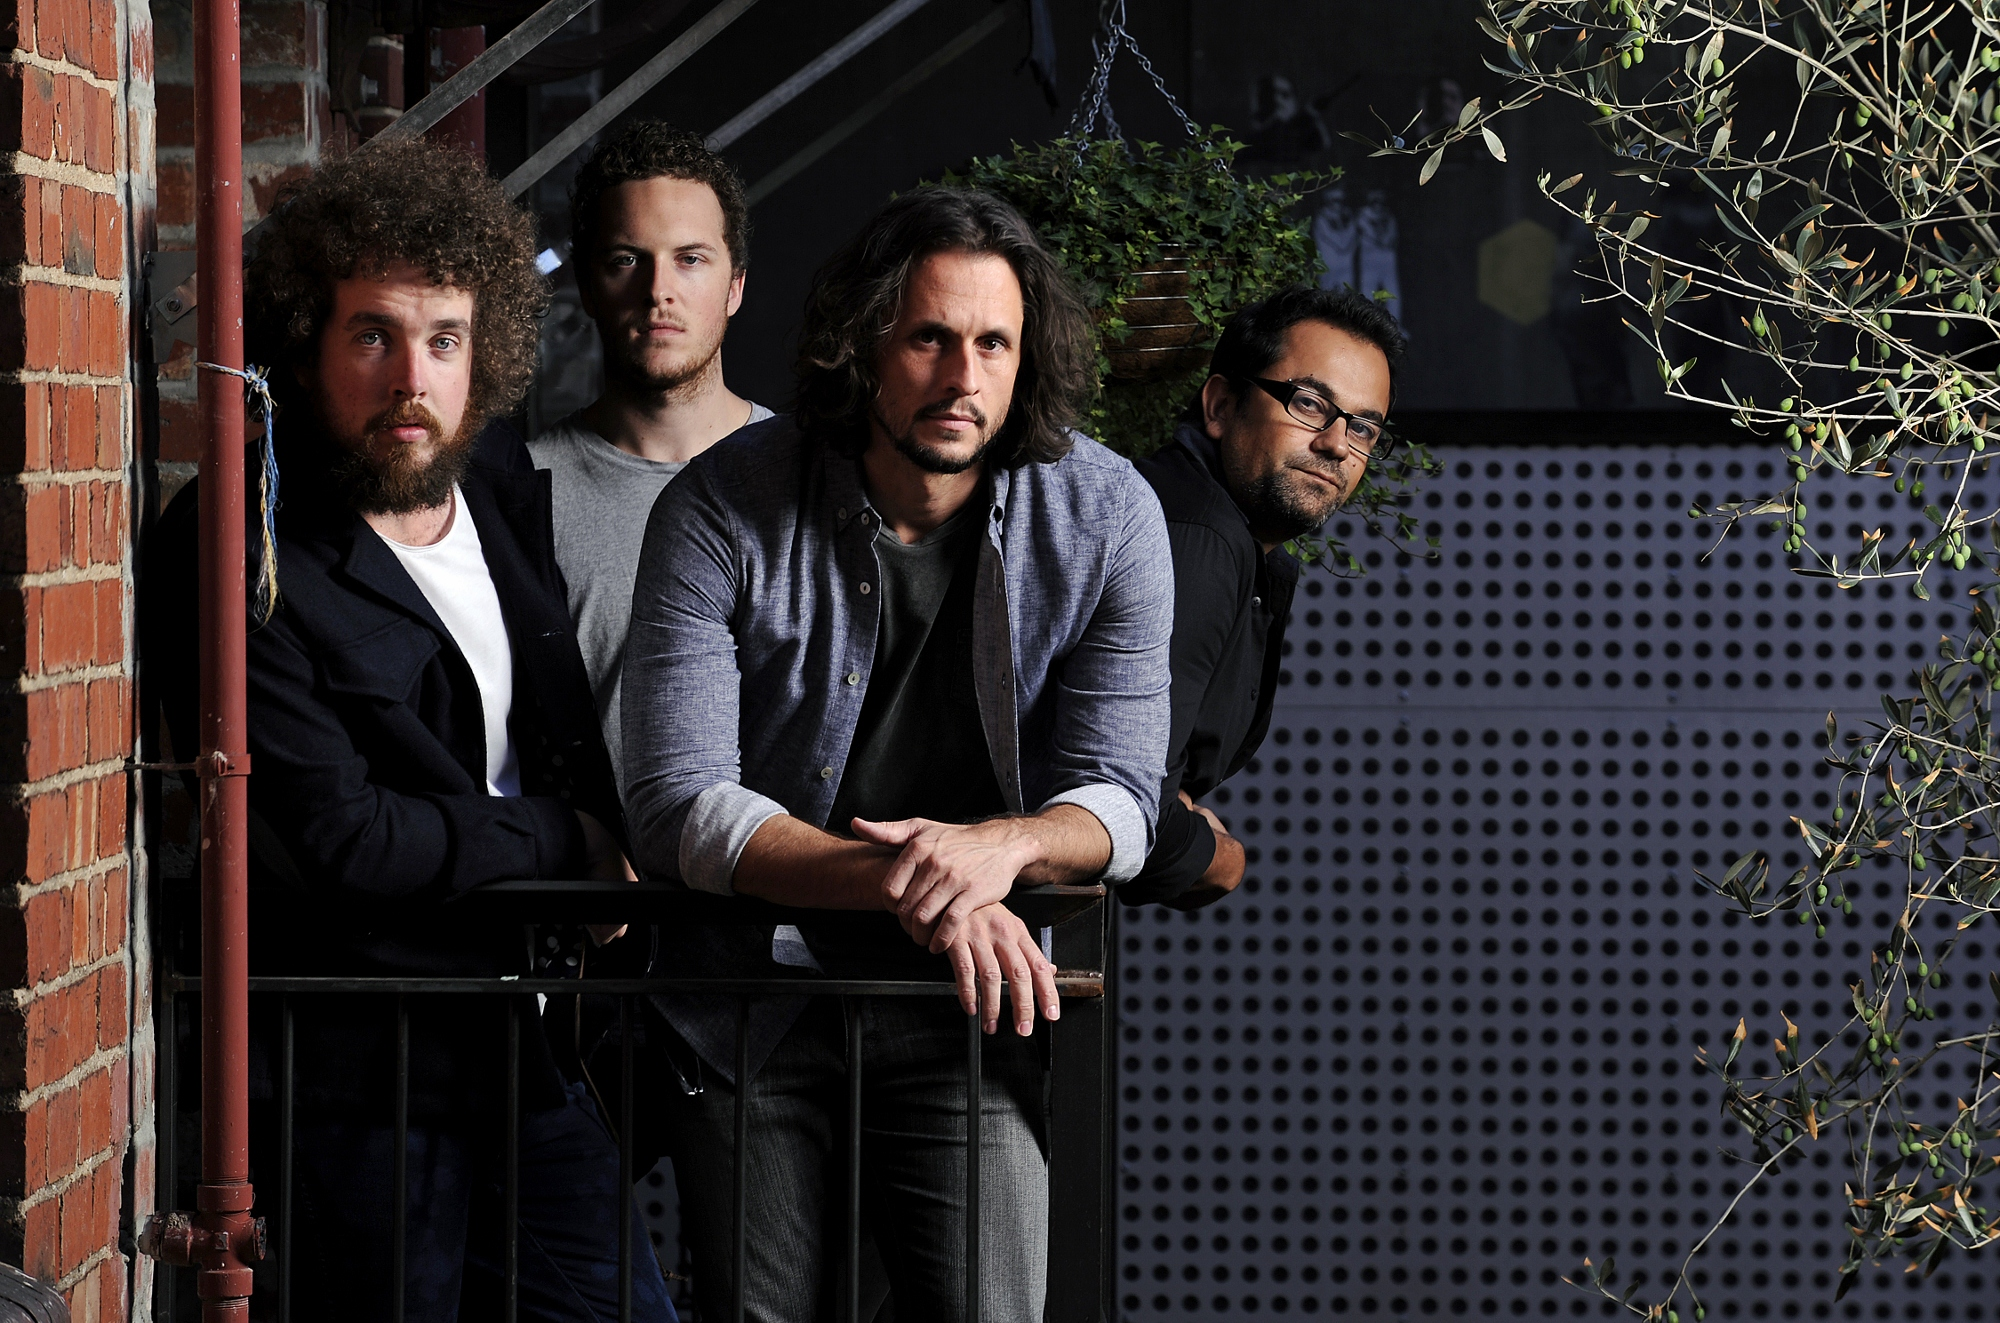 Zoophyte to support INXS and announce headline shows